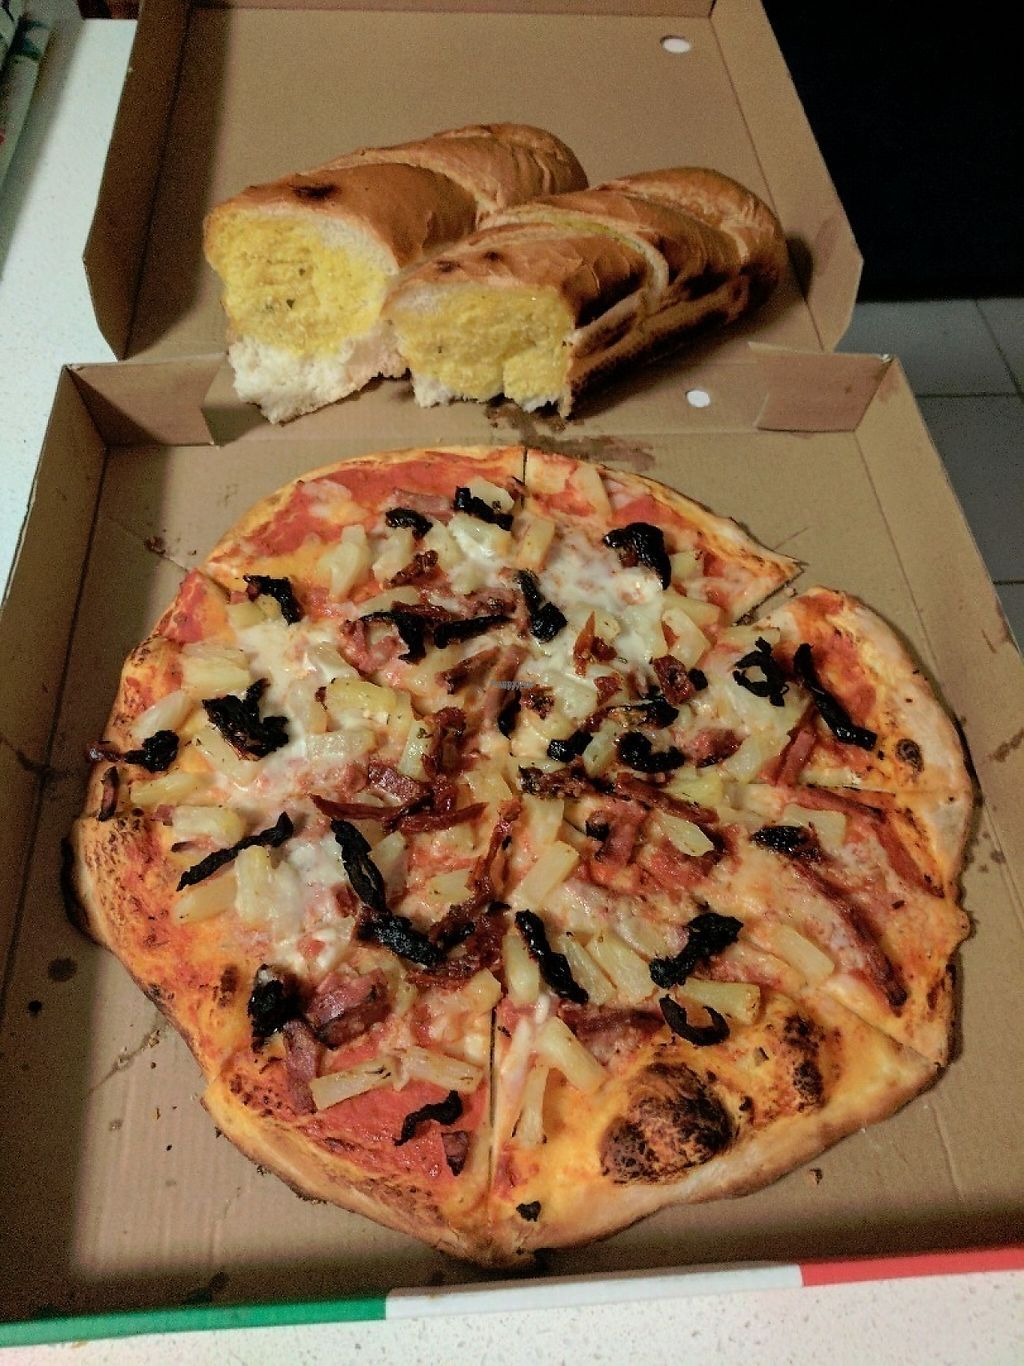 """Photo of Frank's Pizza Coffee & More  by <a href=""""/members/profile/tjn1992"""">tjn1992</a> <br/>Ham and Pinapple Pizza with Sundried Tomatoes & Vegan Garlic Bread <br/> March 22, 2017  - <a href='/contact/abuse/image/88993/239380'>Report</a>"""